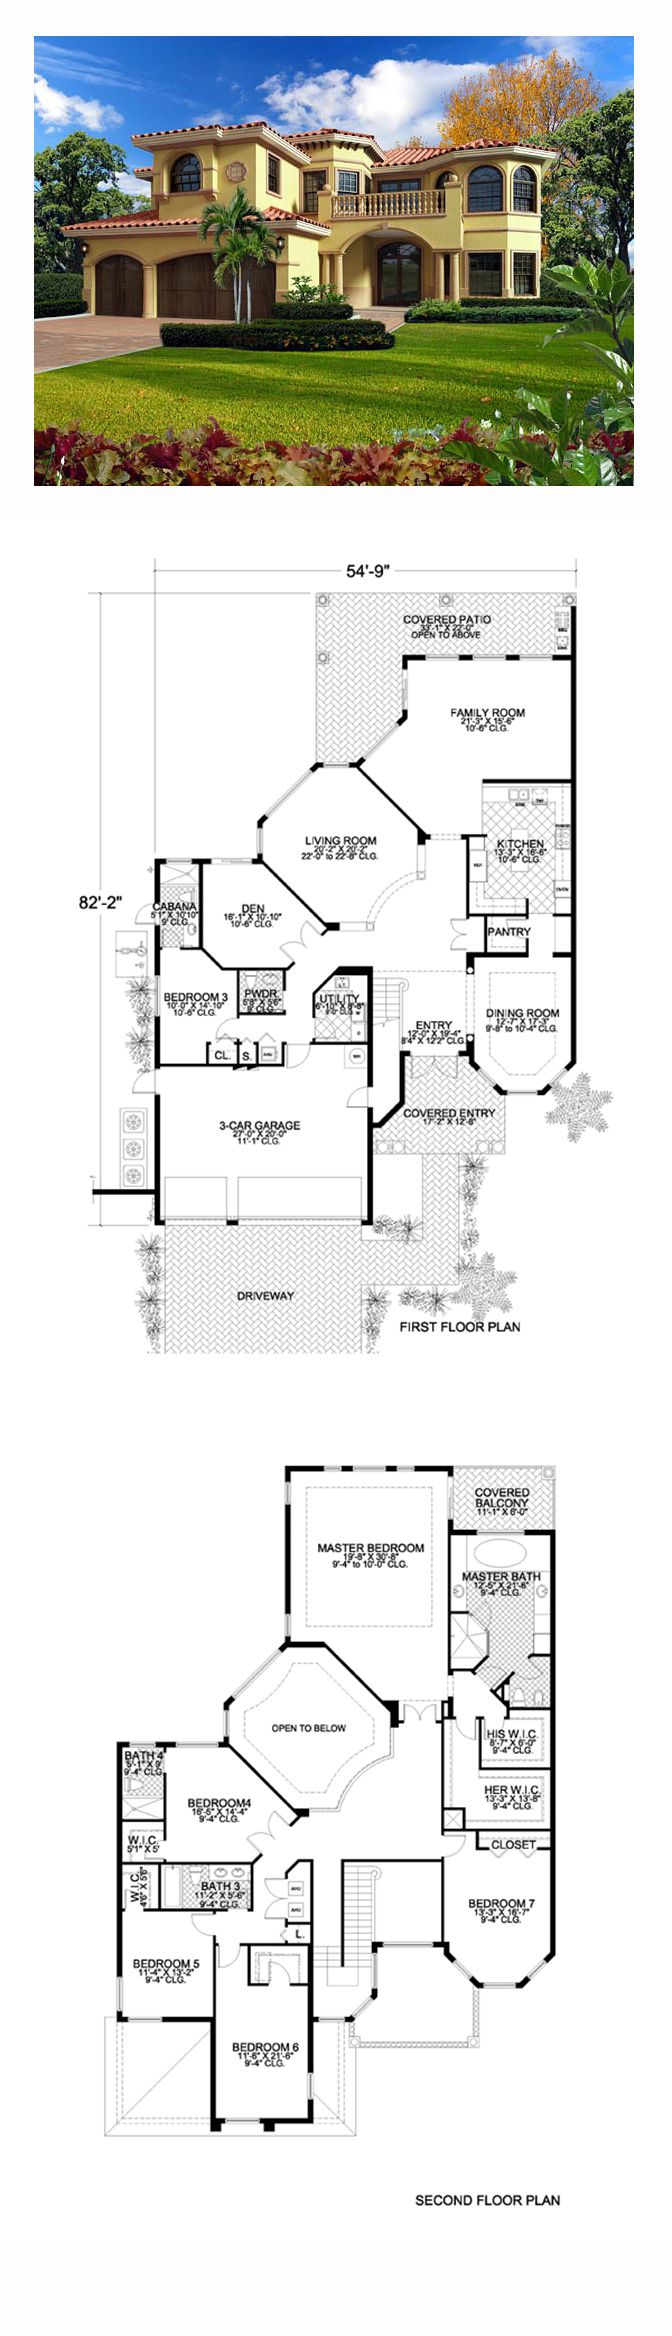 Mediterranean Style House Plan 55898 With 6 Bed 5 Bath 3 Car Garage Mediterranean Style House Plans Craftsman House Plans Architectural Design House Plans